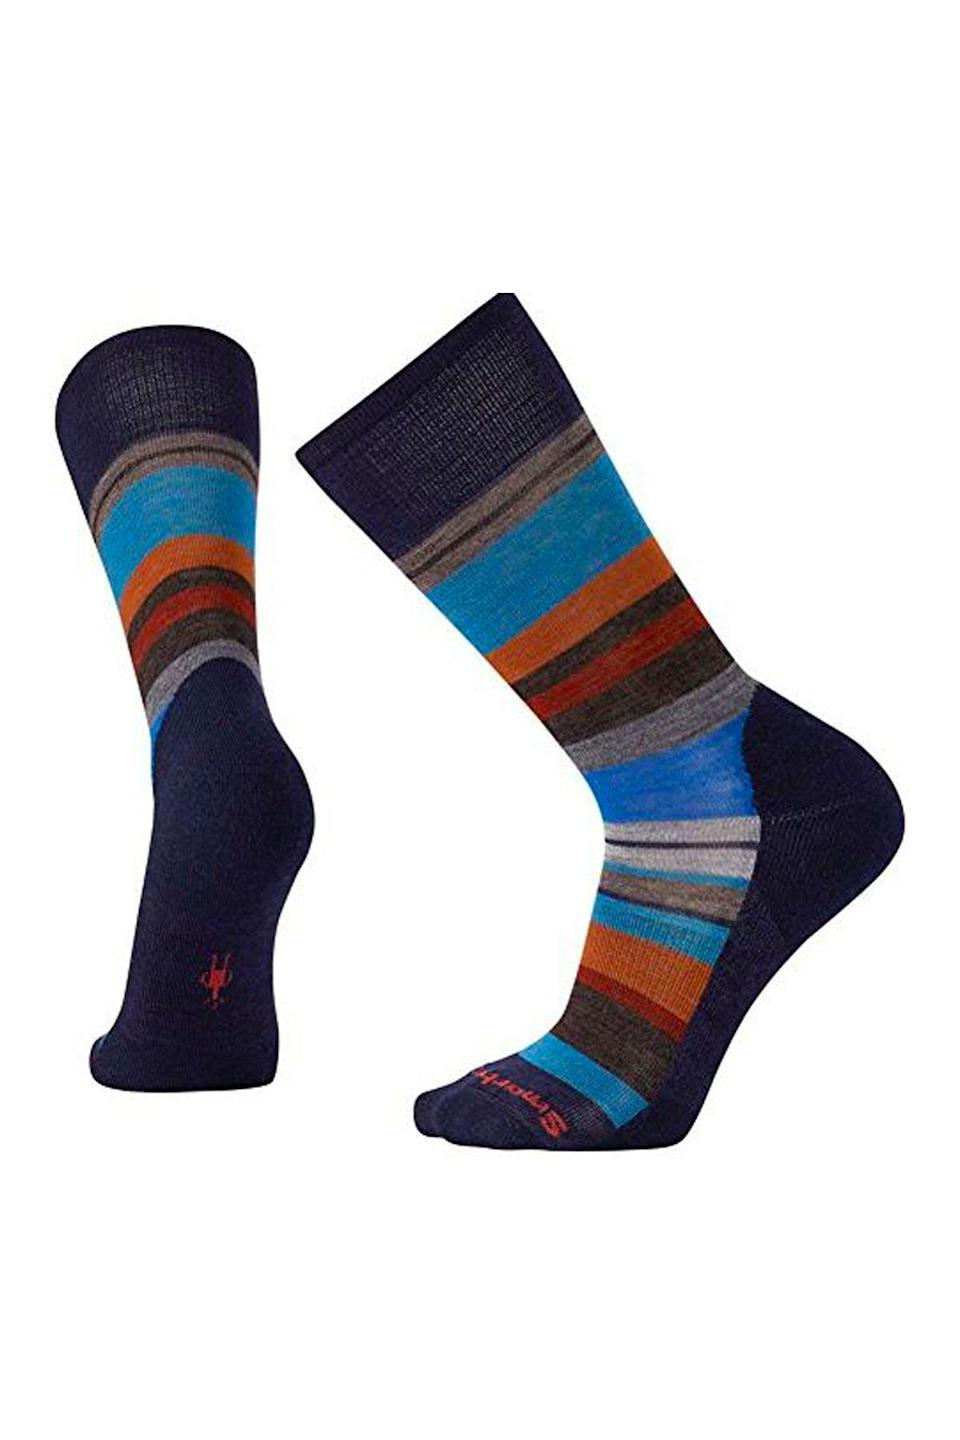 "<p><strong>Smartwool</strong></p><p>amazon.com</p><p><a href=""http://www.amazon.com/dp/B01N0KZM74/?tag=syn-yahoo-20&ascsubtag=%5Bartid%7C10070.g.964%5Bsrc%7Cyahoo-us"" rel=""nofollow noopener"" target=""_blank"" data-ylk=""slk:SHOP NOW"" class=""link rapid-noclick-resp"">SHOP NOW</a></p><p>Not only are these socks insanely soft and warm, but they also have a supportive arch brace that provides all-day comfort.</p>"